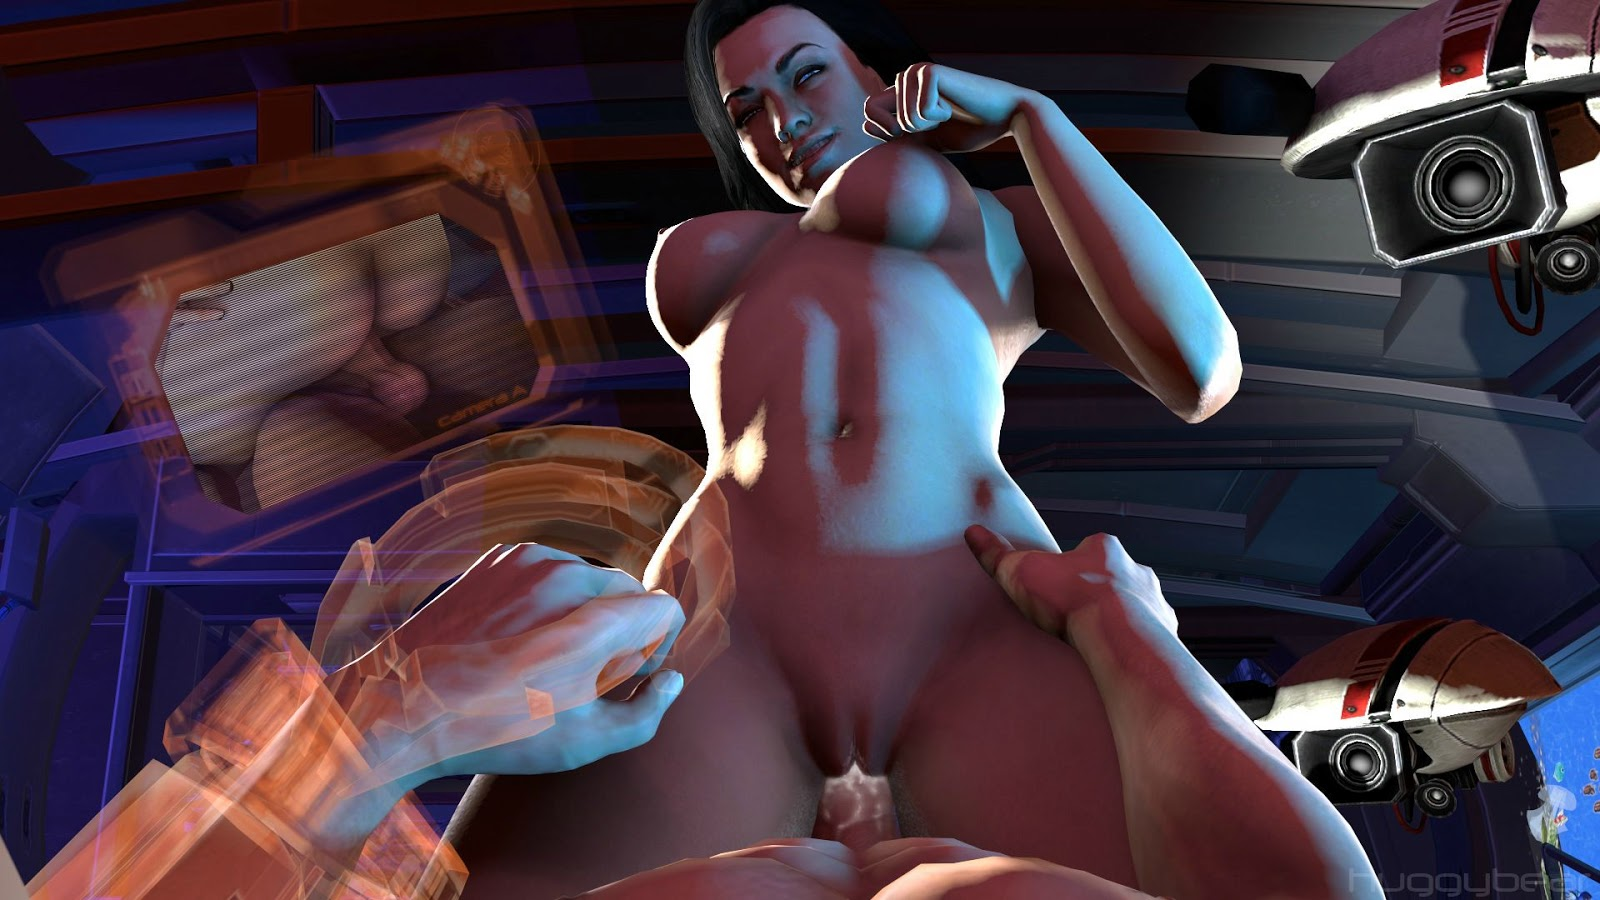 Mass effect porn animations fucking pictures